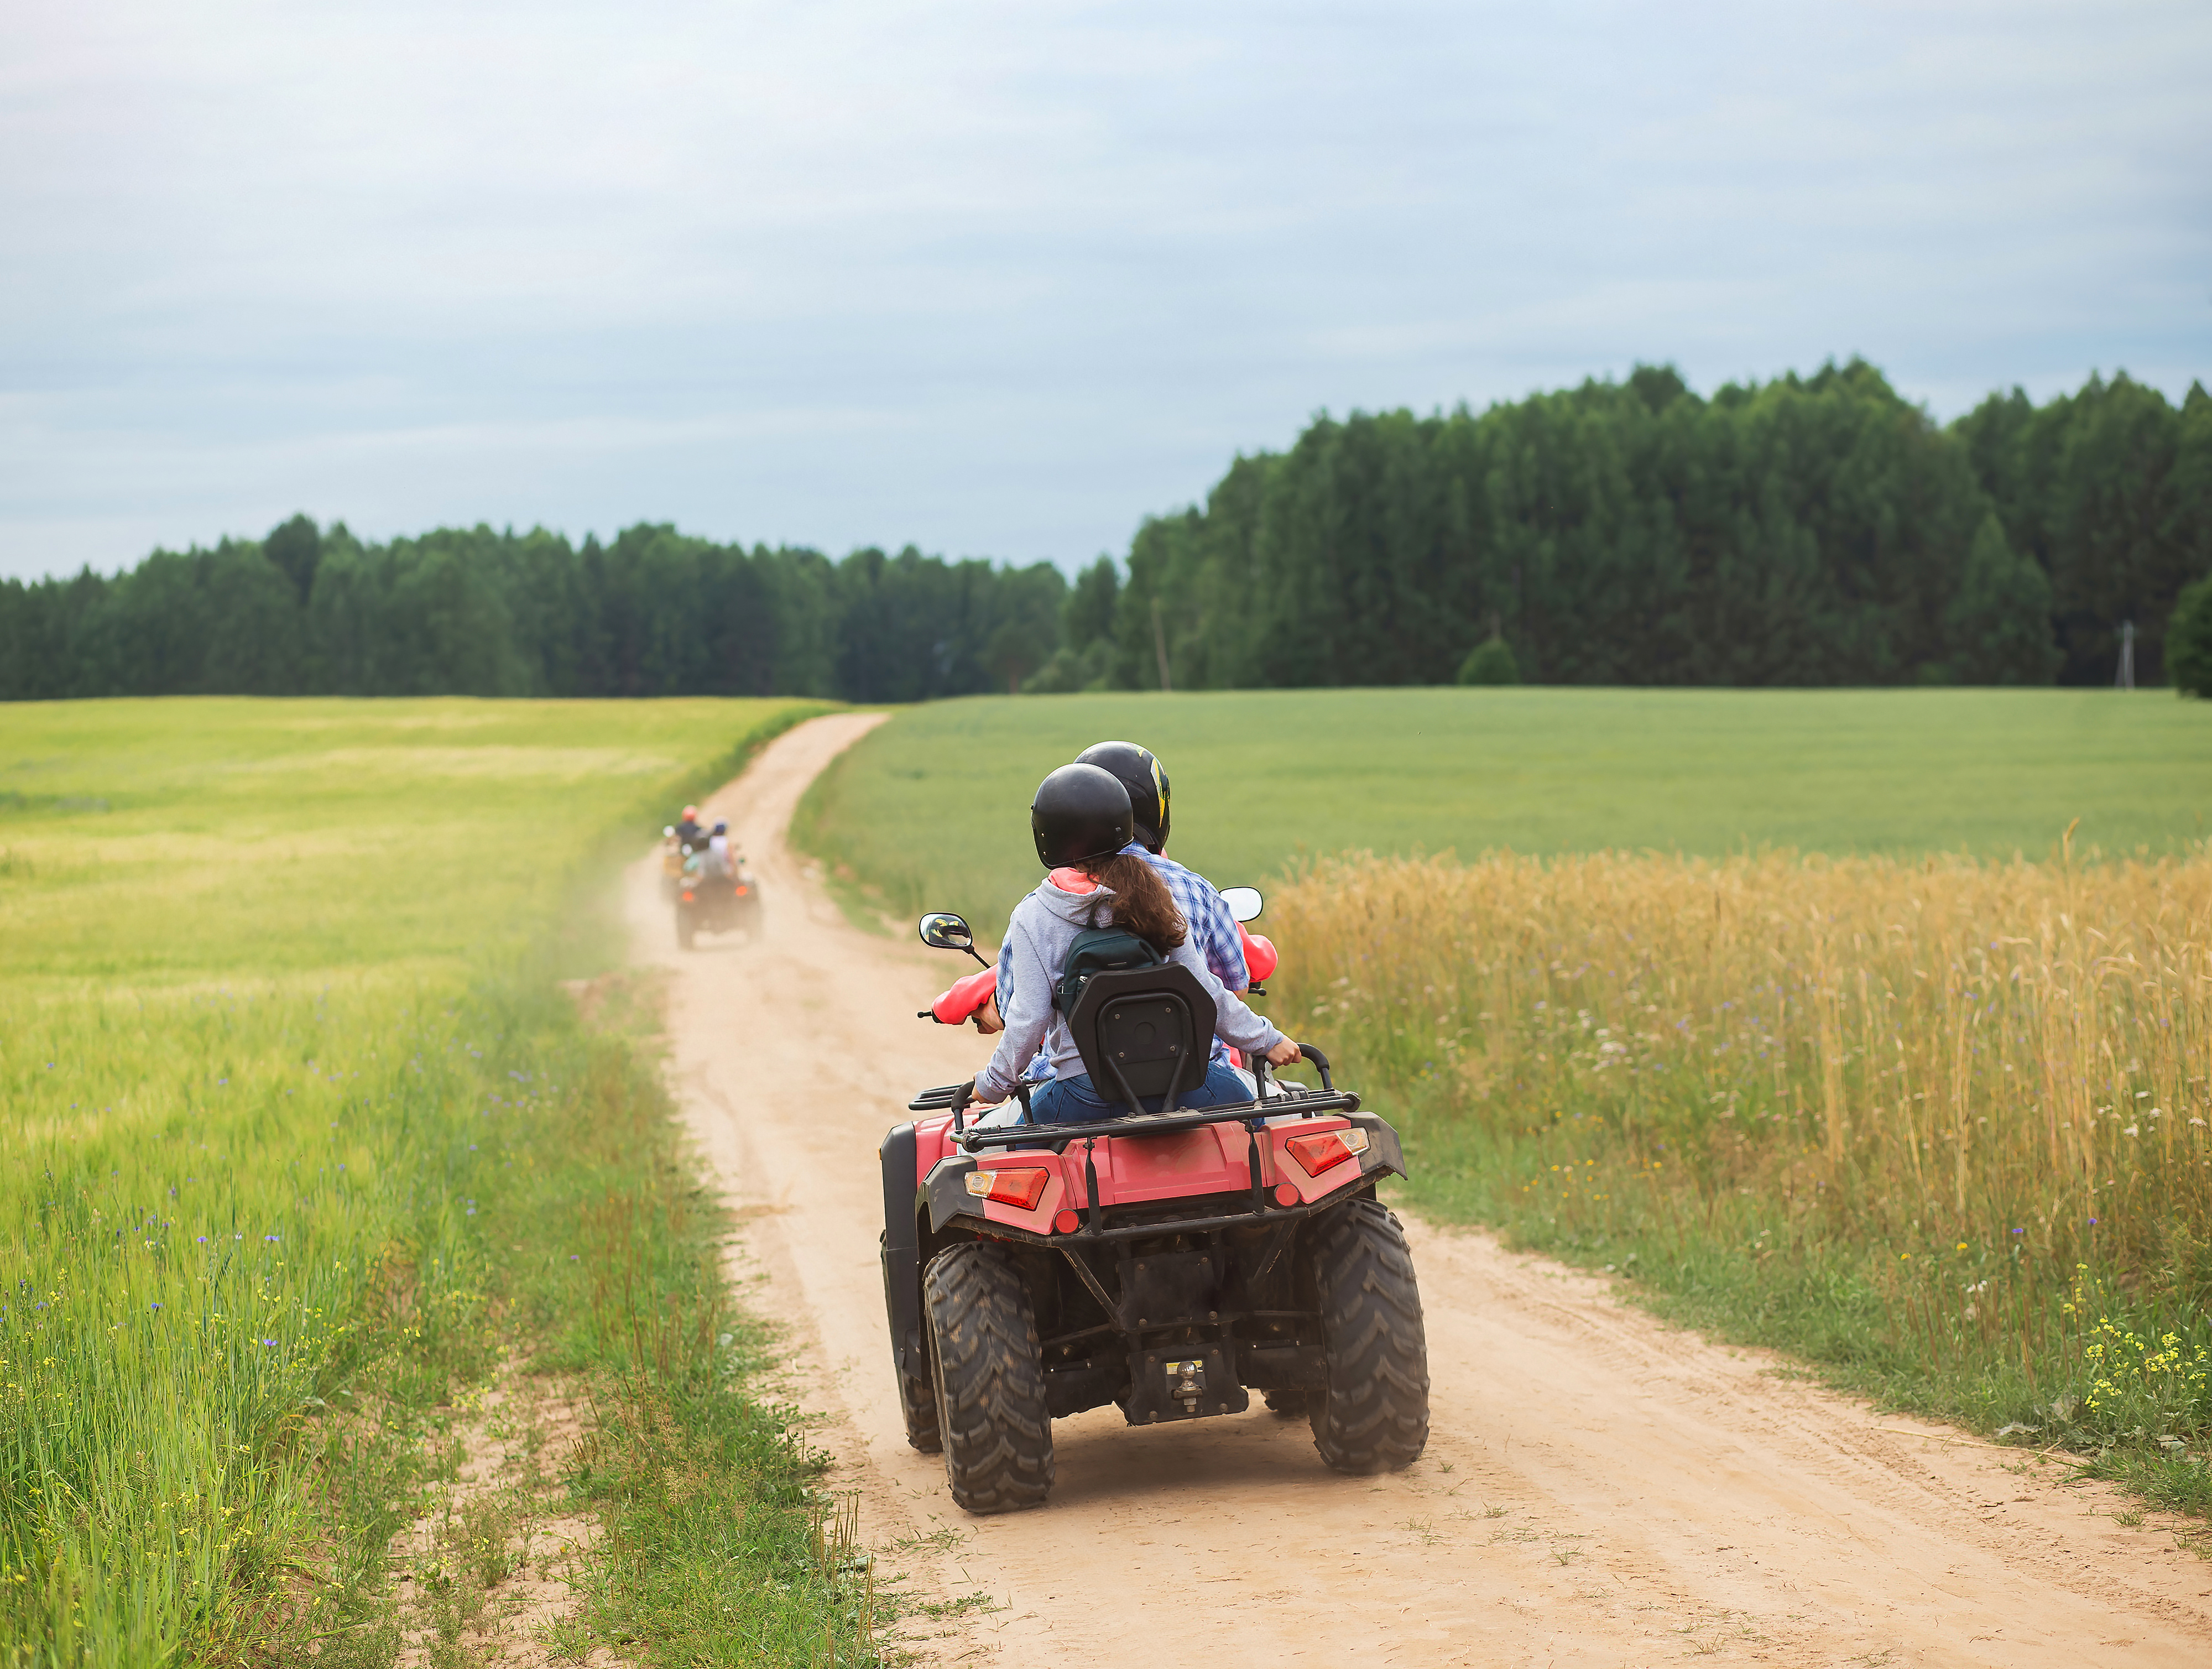 Good Sam Has Added 21 New Parks An ATV Quad sets out on a dusty trail toward a forest.